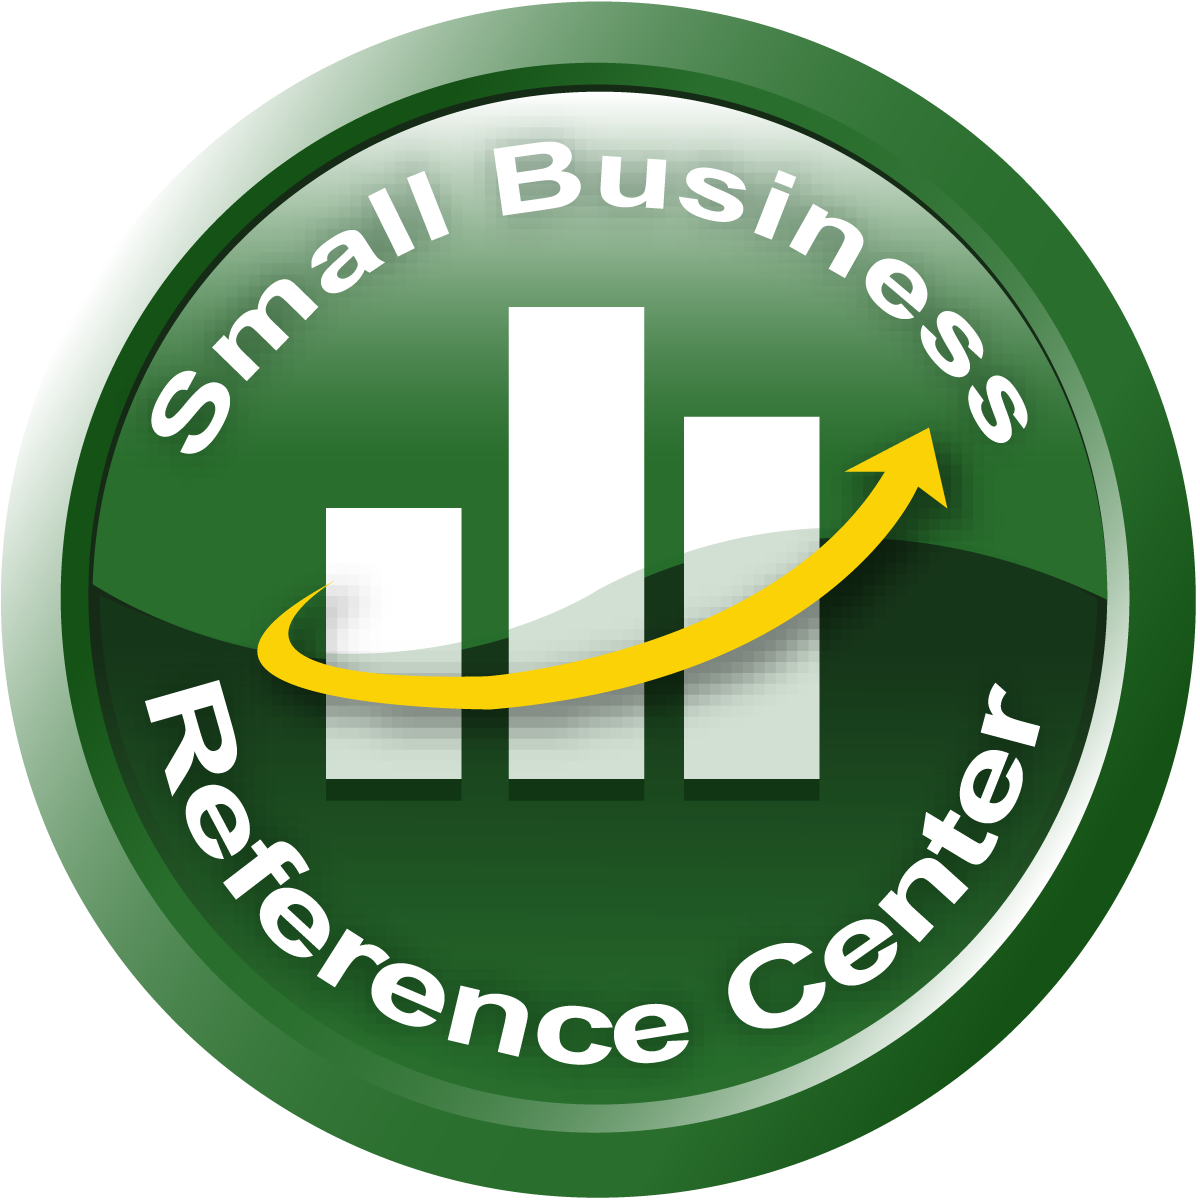 Small Business Reference Center circle logo